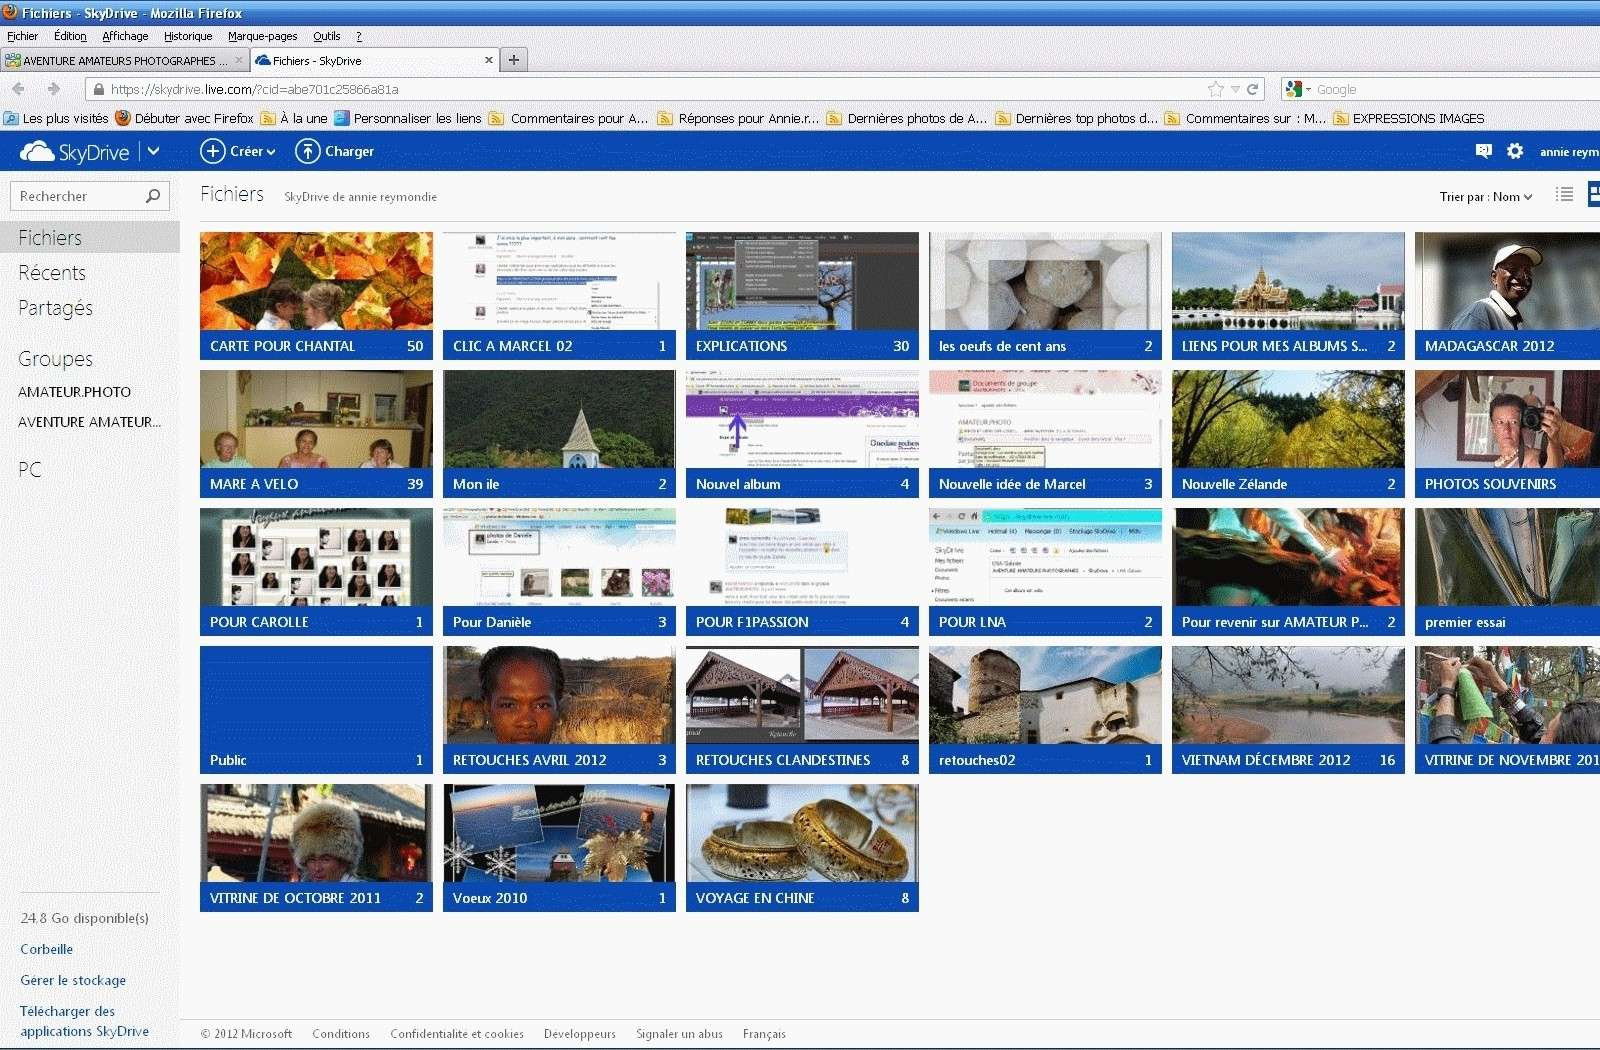 POSTER DES PHOTOS ET AUTORISER DES COMMENTAIRES DS SON SKYDRIVE PERSO SUR WINDOWS LIVE  Daniel10